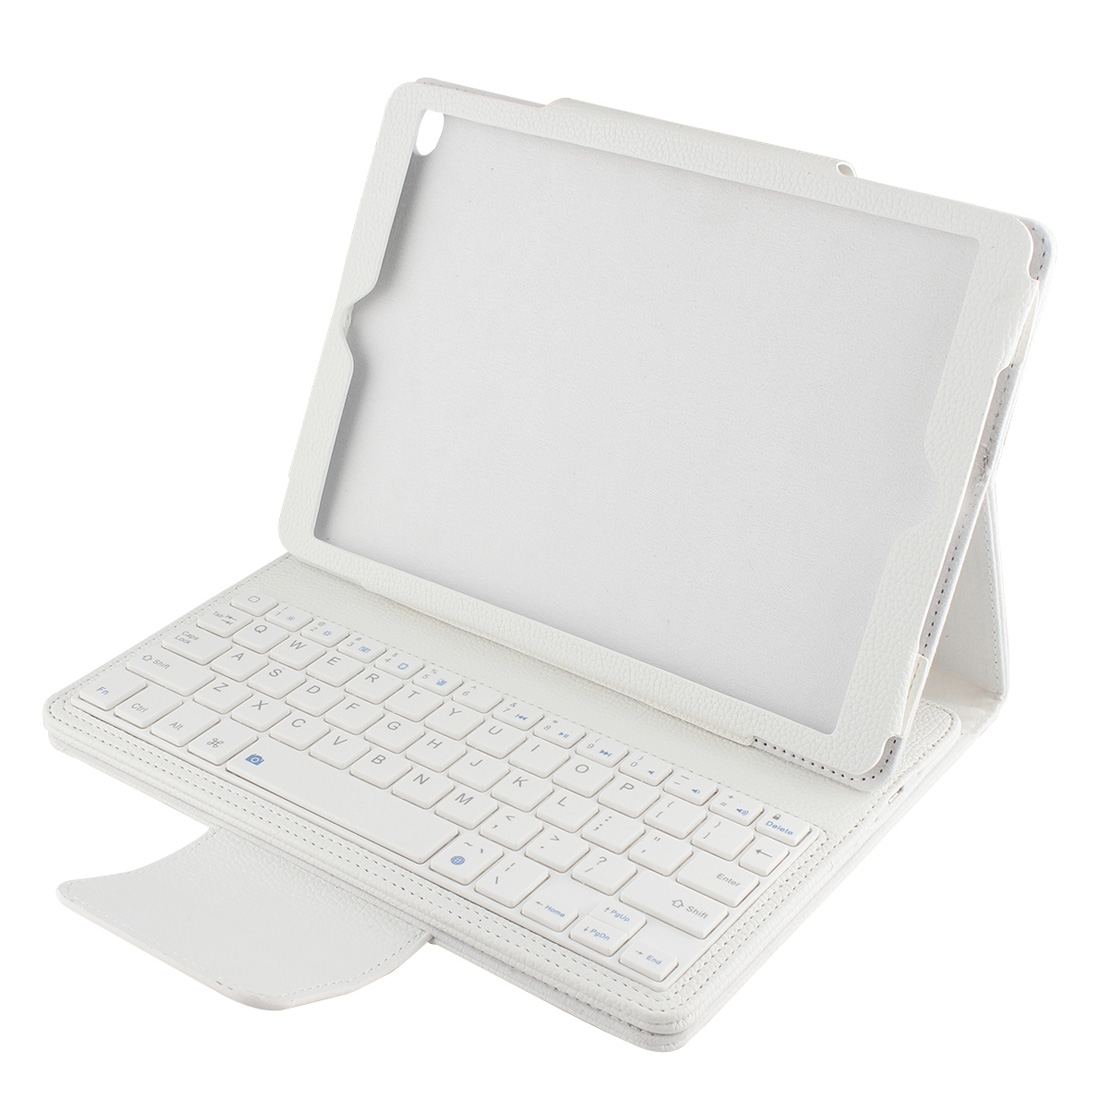 iPad Air 2 Case With Keyboard For iPad Air 2, iPad 6th Gen., Leather Case & Bluetooth (White)